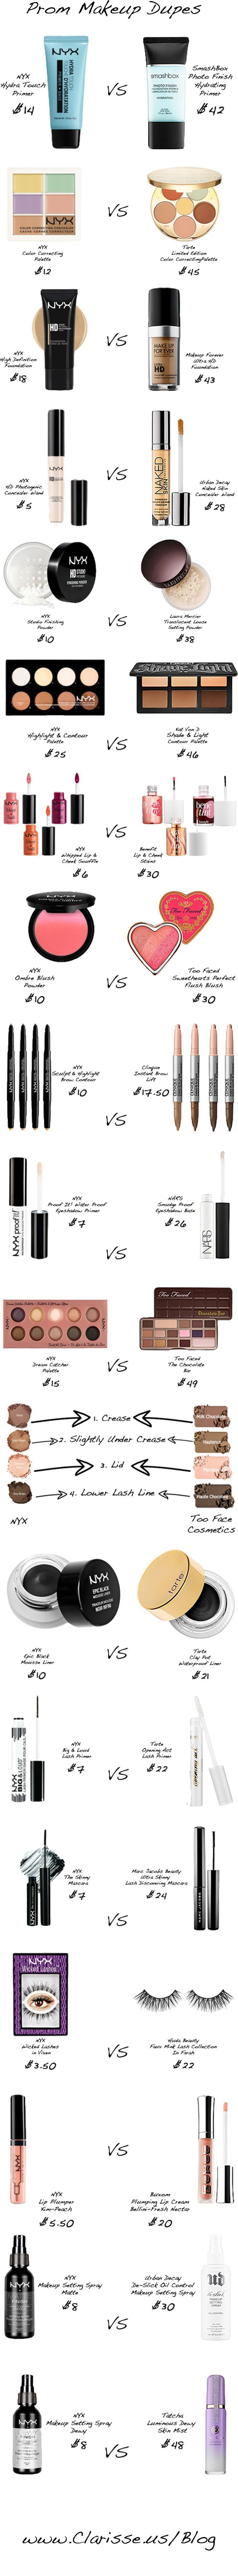 Do you love all those looks the beauty vlogger gurus show you how to do on youtube? Get those same great products but at half the price!! Click to read more about these amazing drugstore makeup dupes to create an AMAZING prom makeup look that will look great with any dress!! clarisse.us/blog